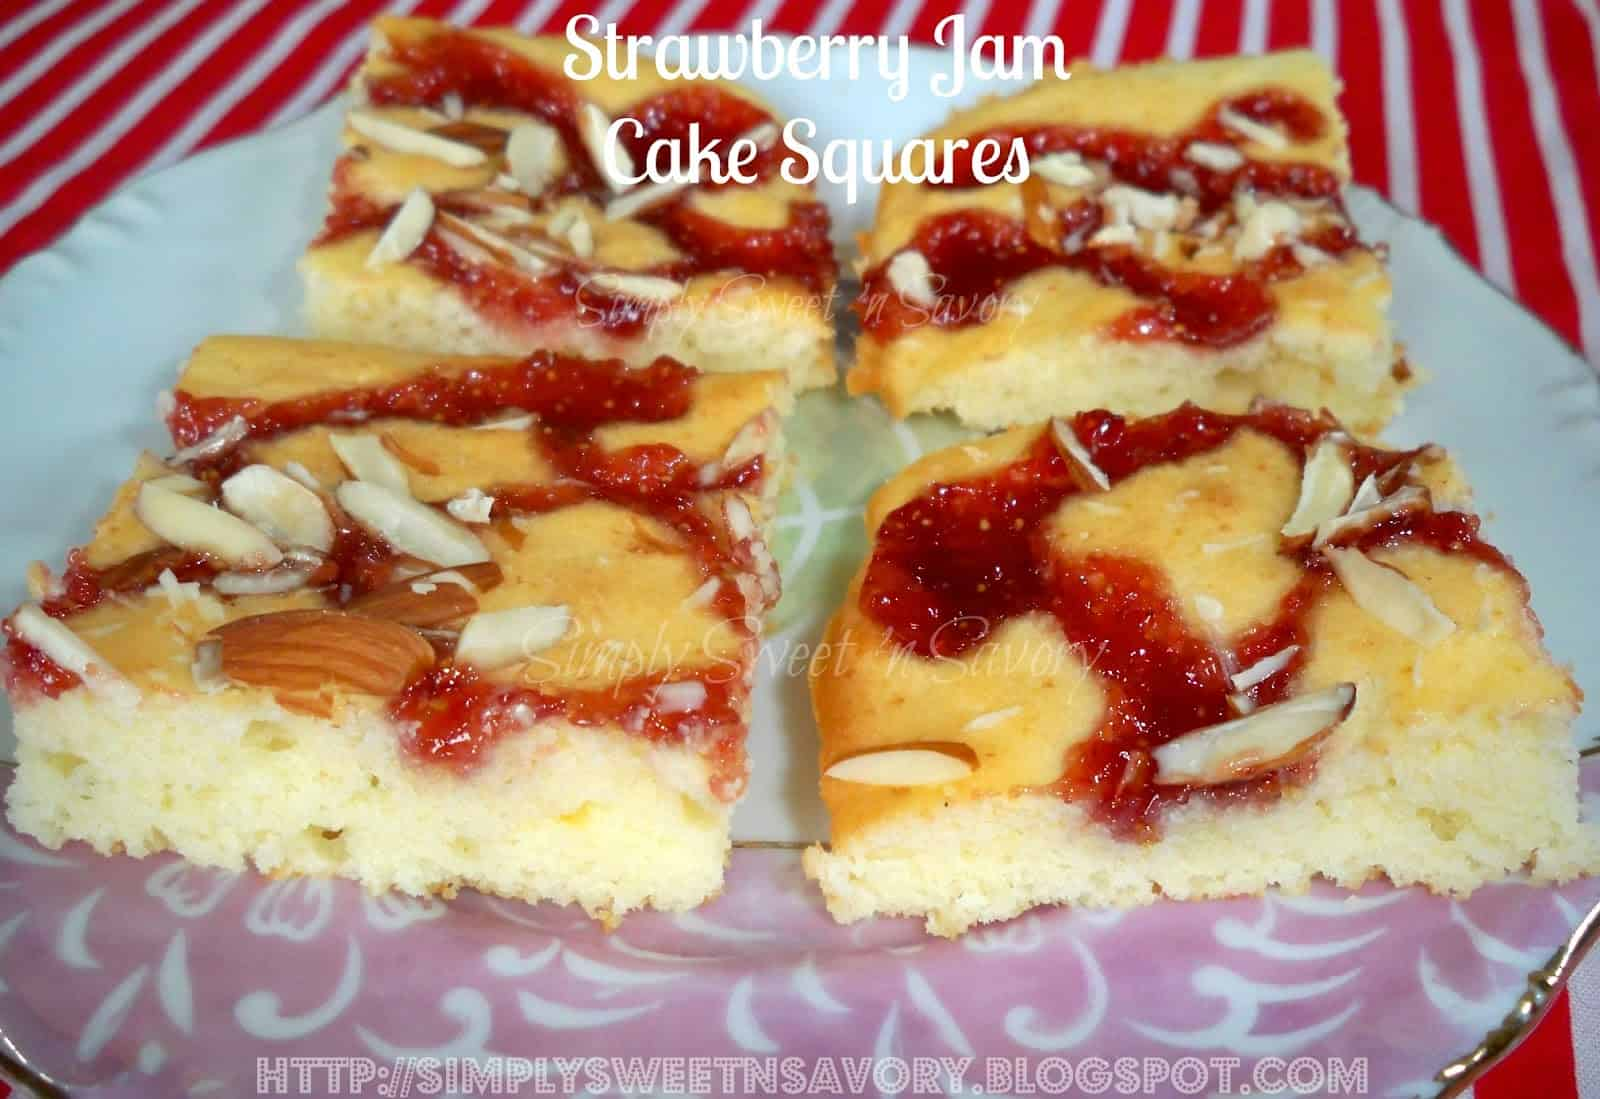 Almond covered strawberry jam cake squares